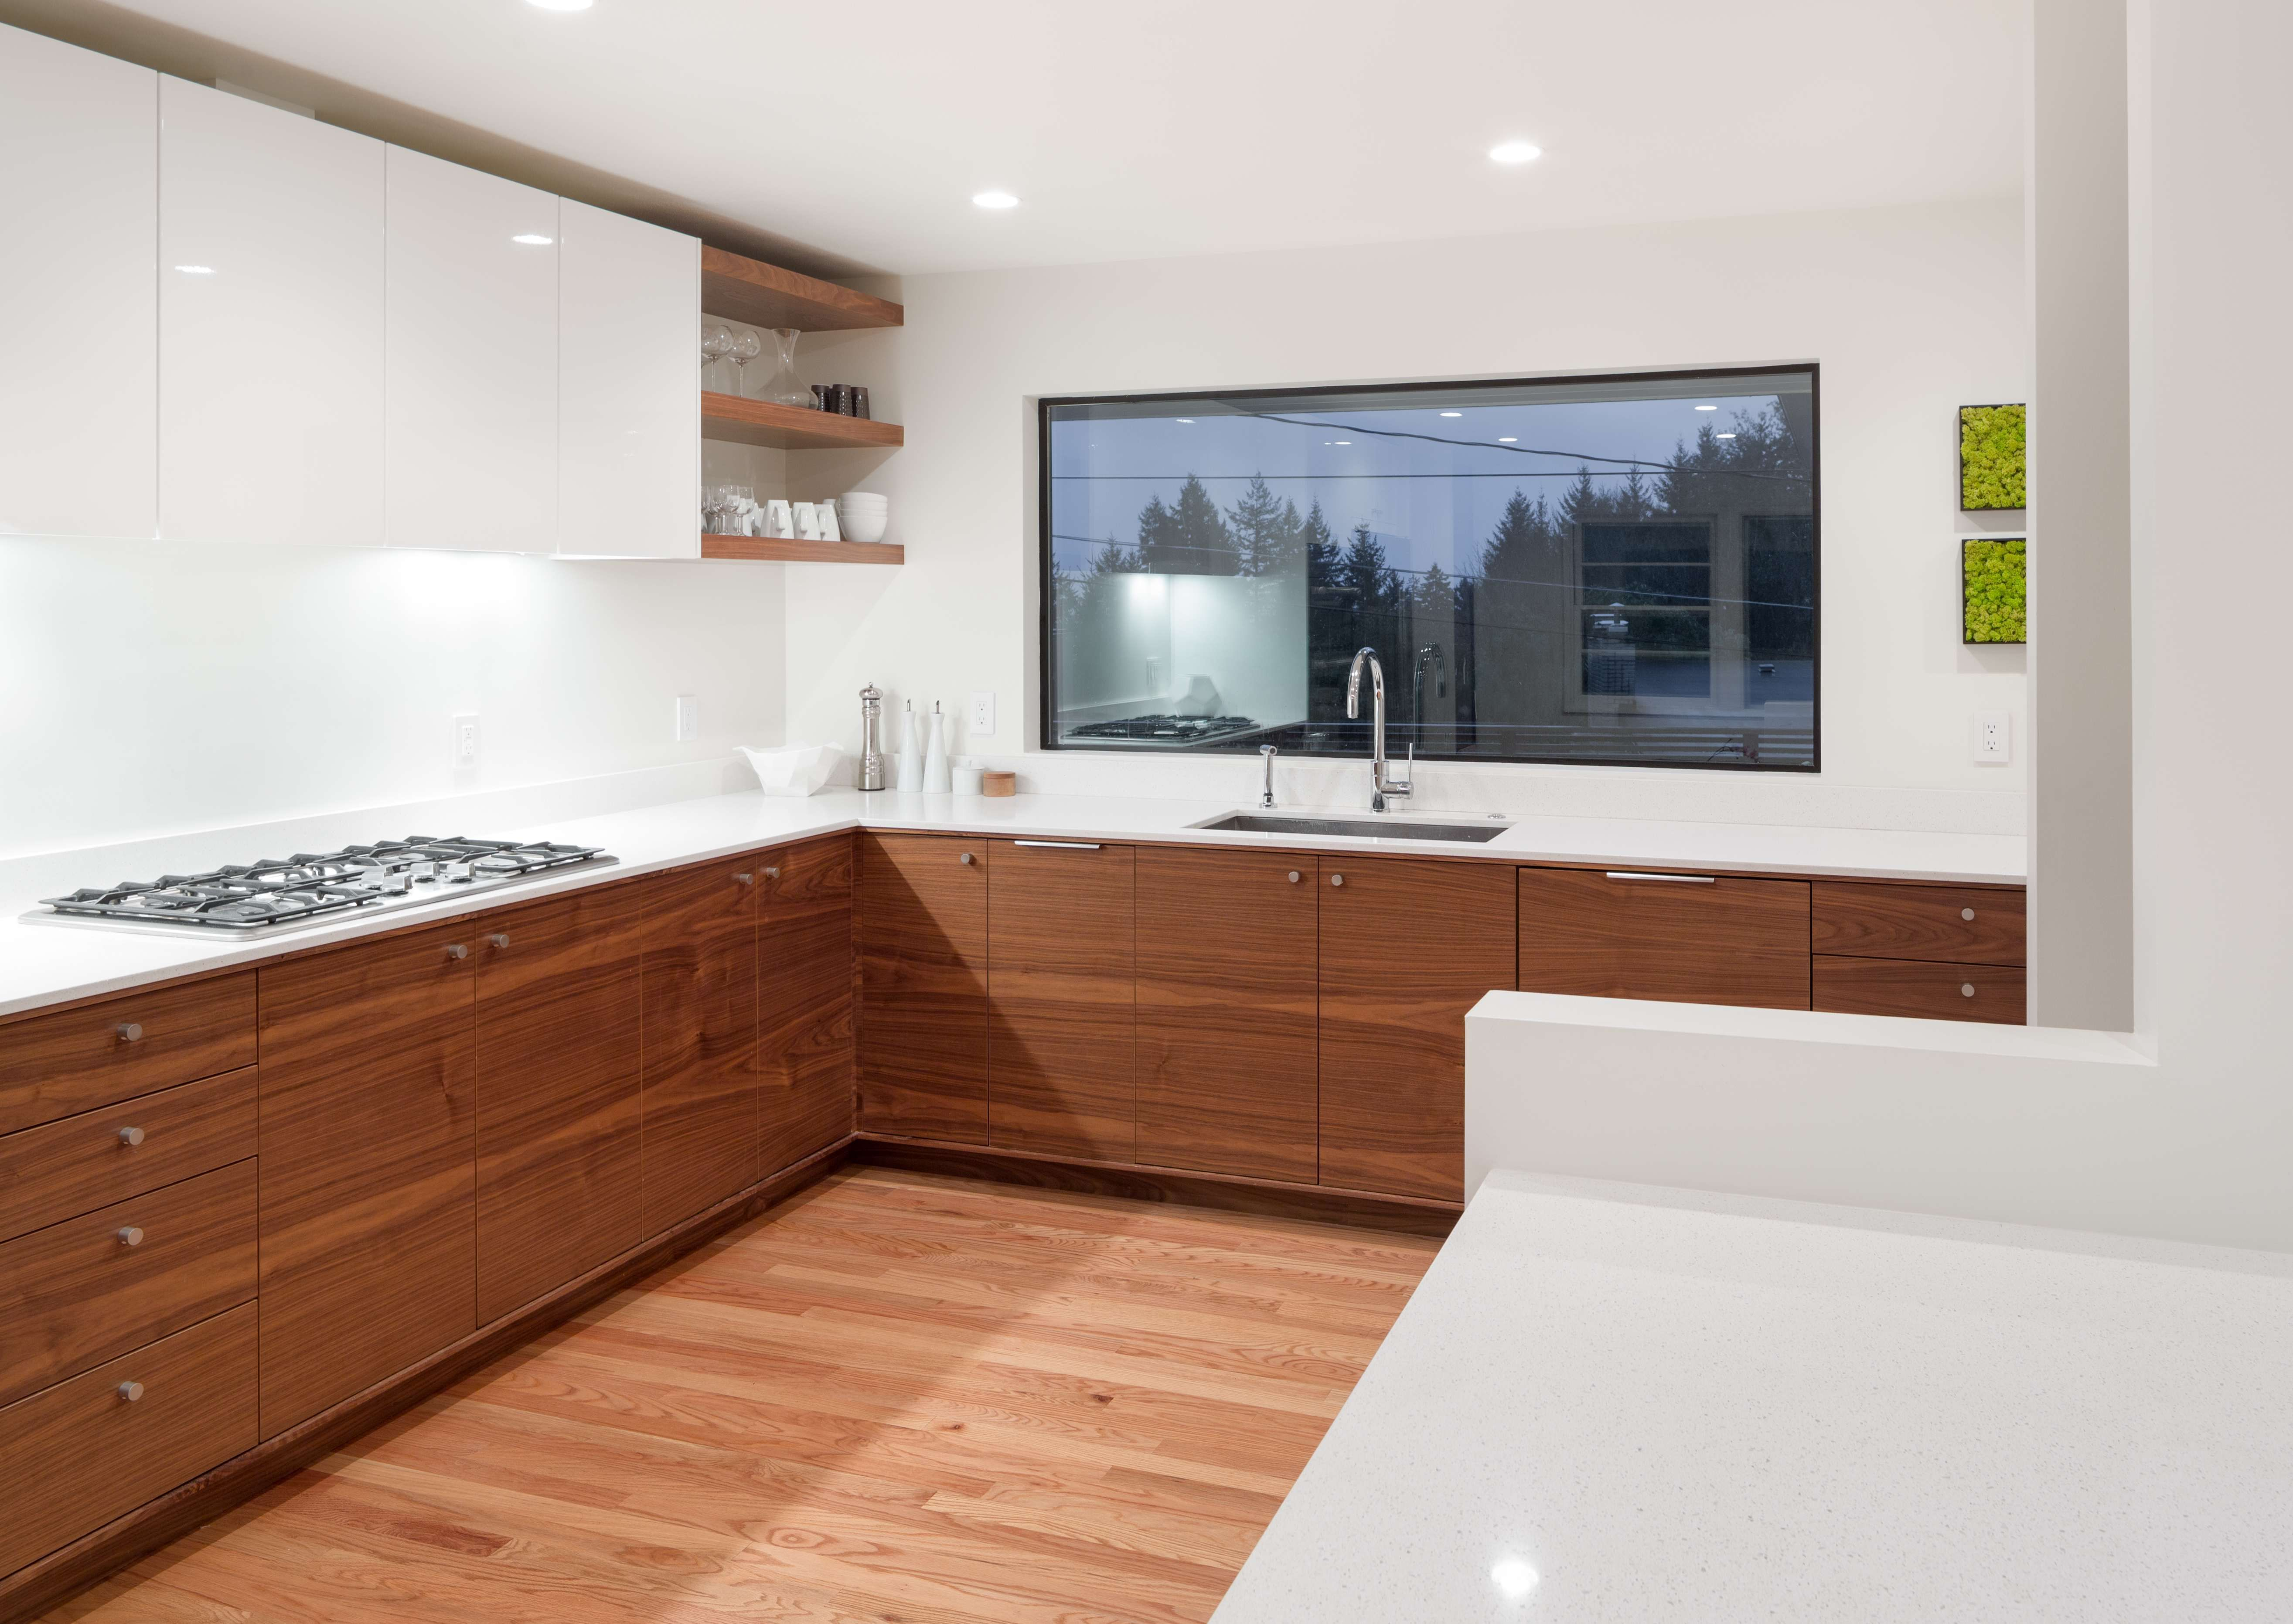 Xl Picture Window Walnut Shelving Corner Detail Modern Bright Light Clean Lined Kitchen Designed Built By Vanillawood High Gloss White